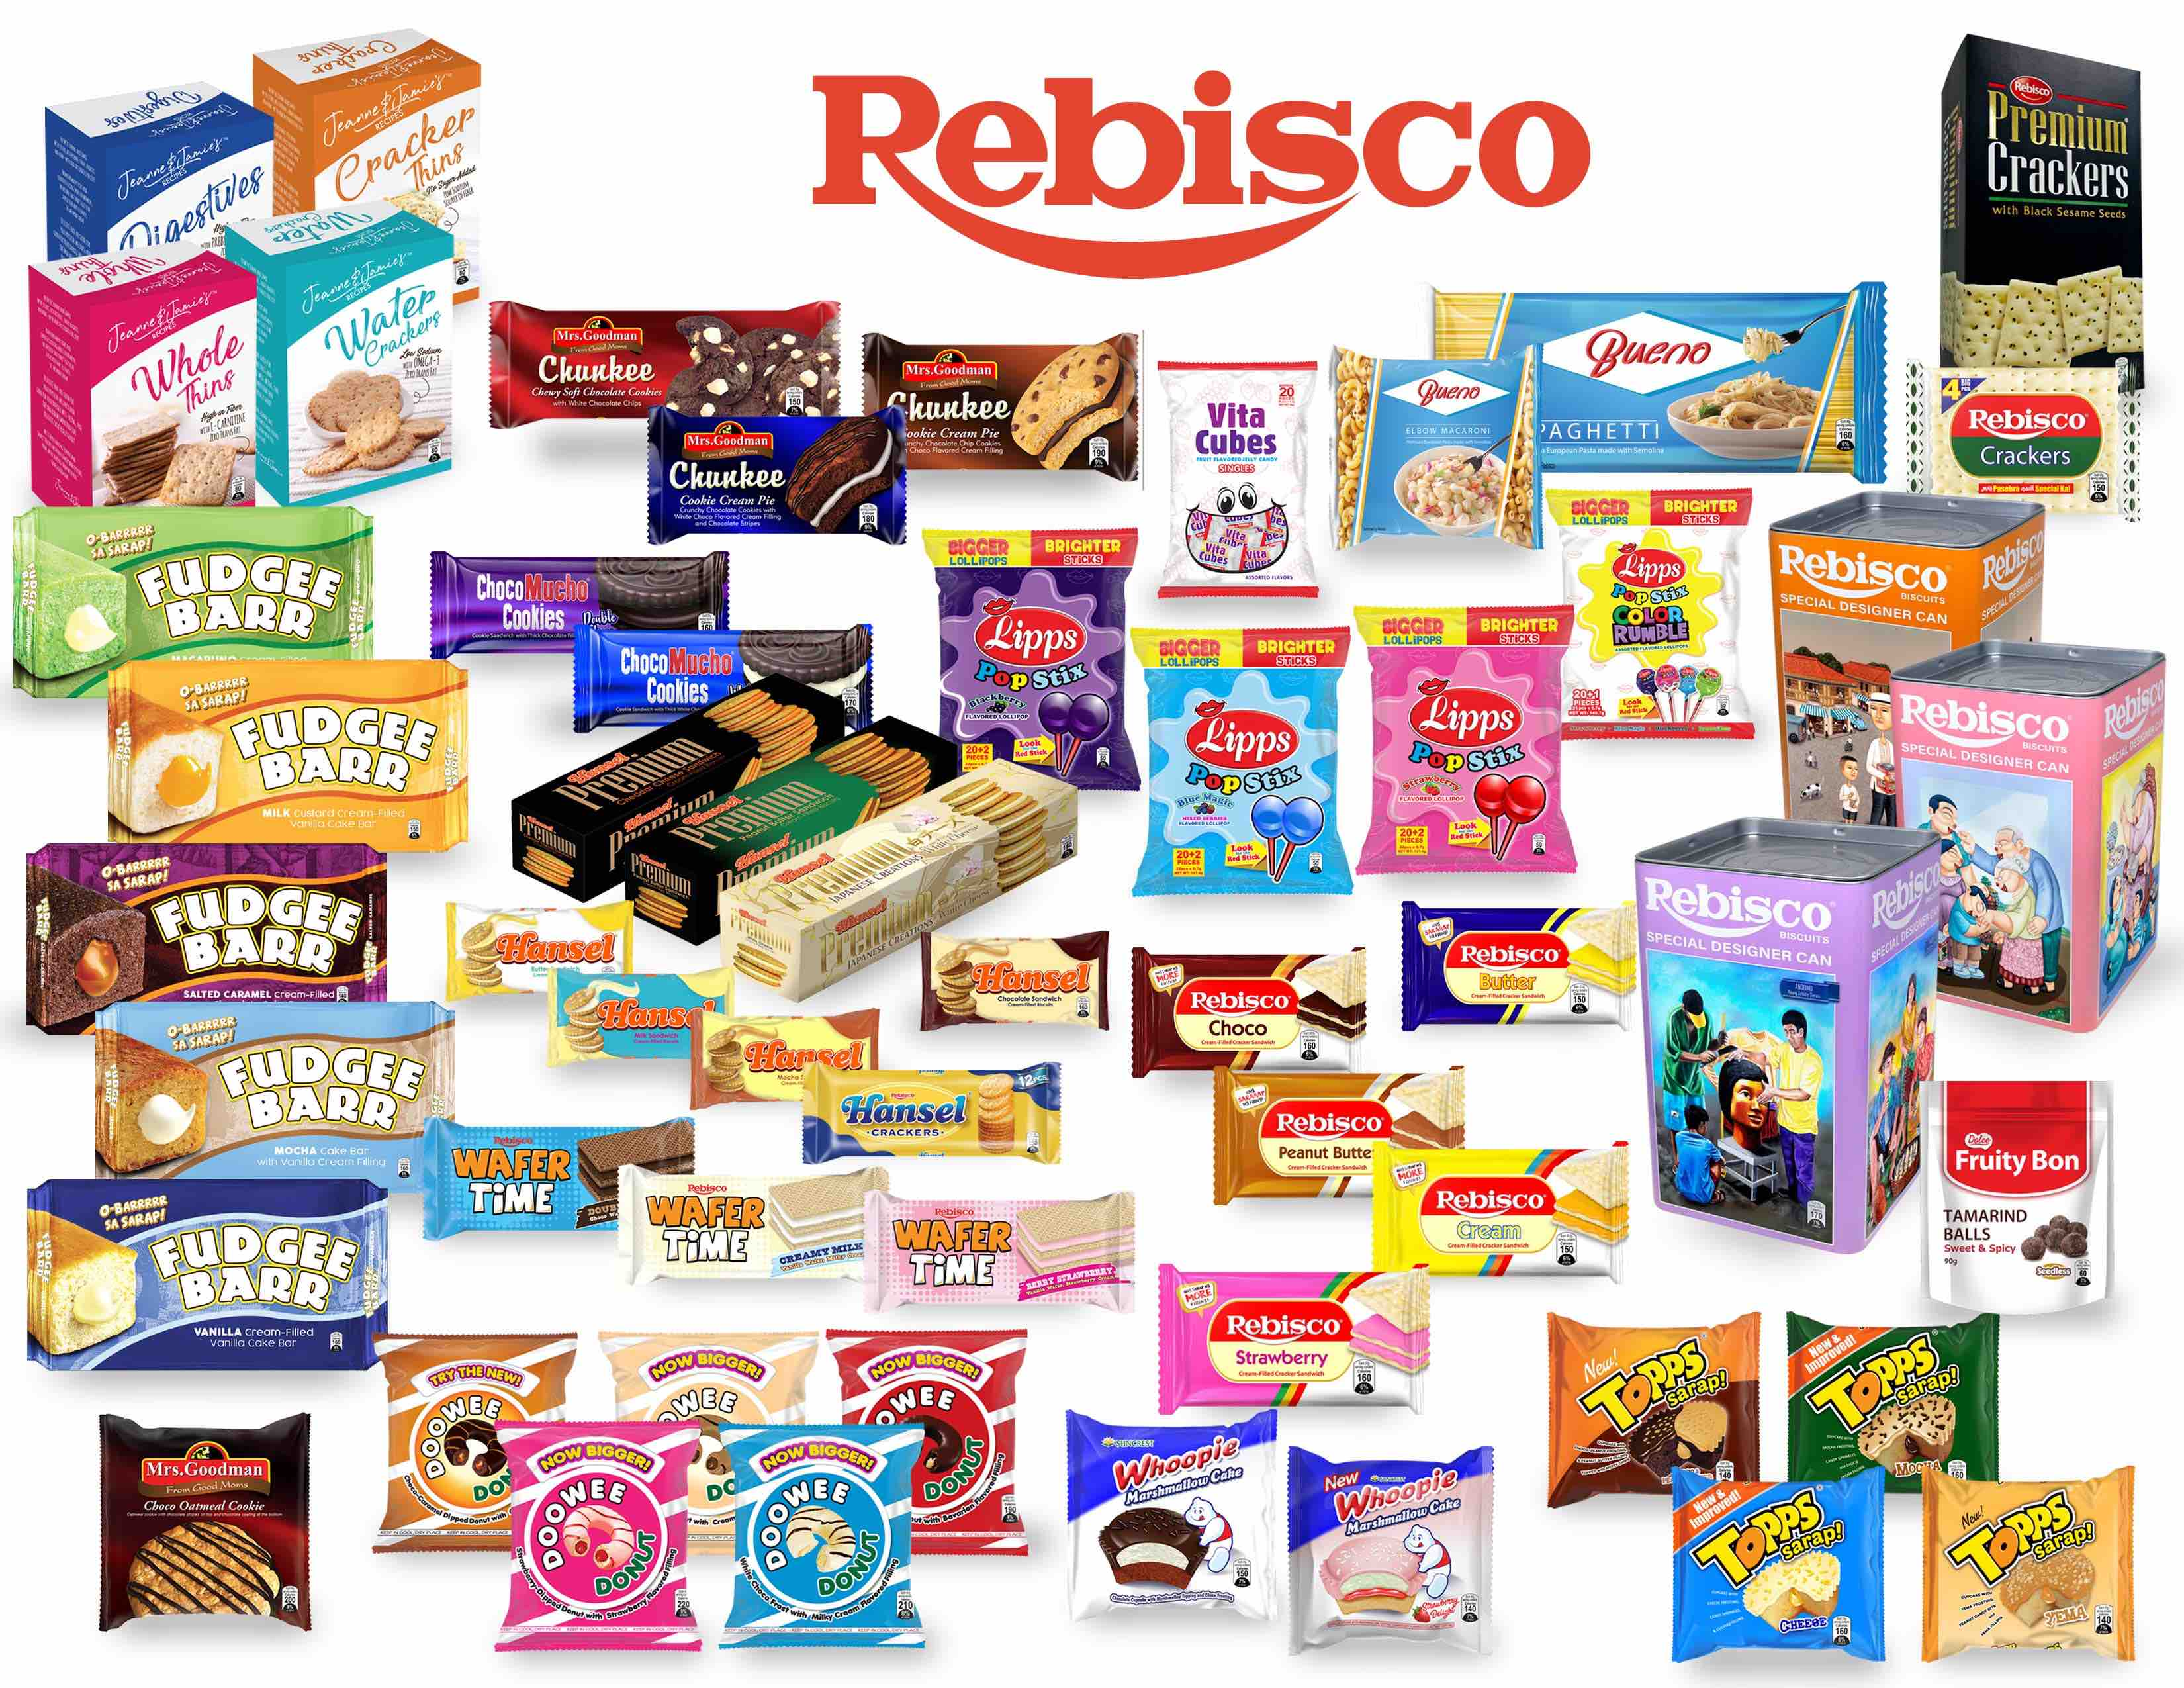 Rebisco Products